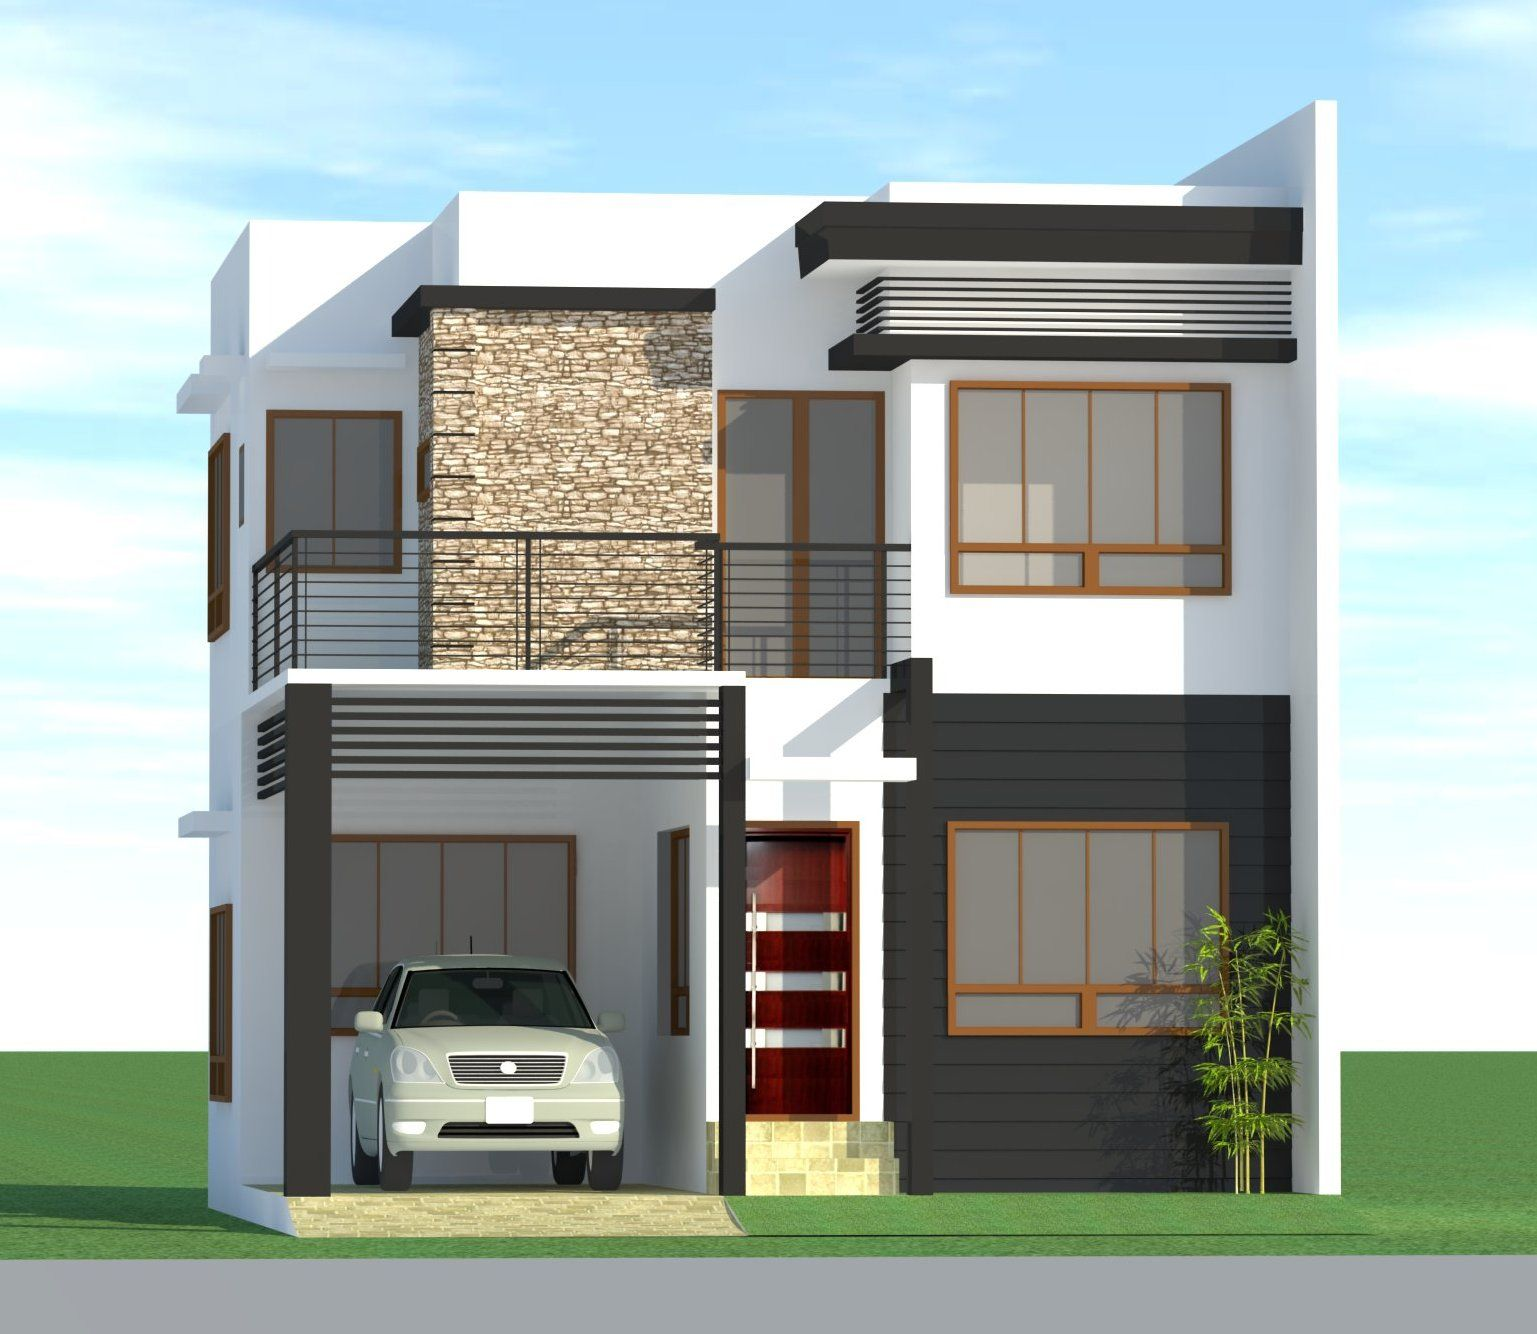 Philippines house design images 3 home design ideas for House garage design philippines